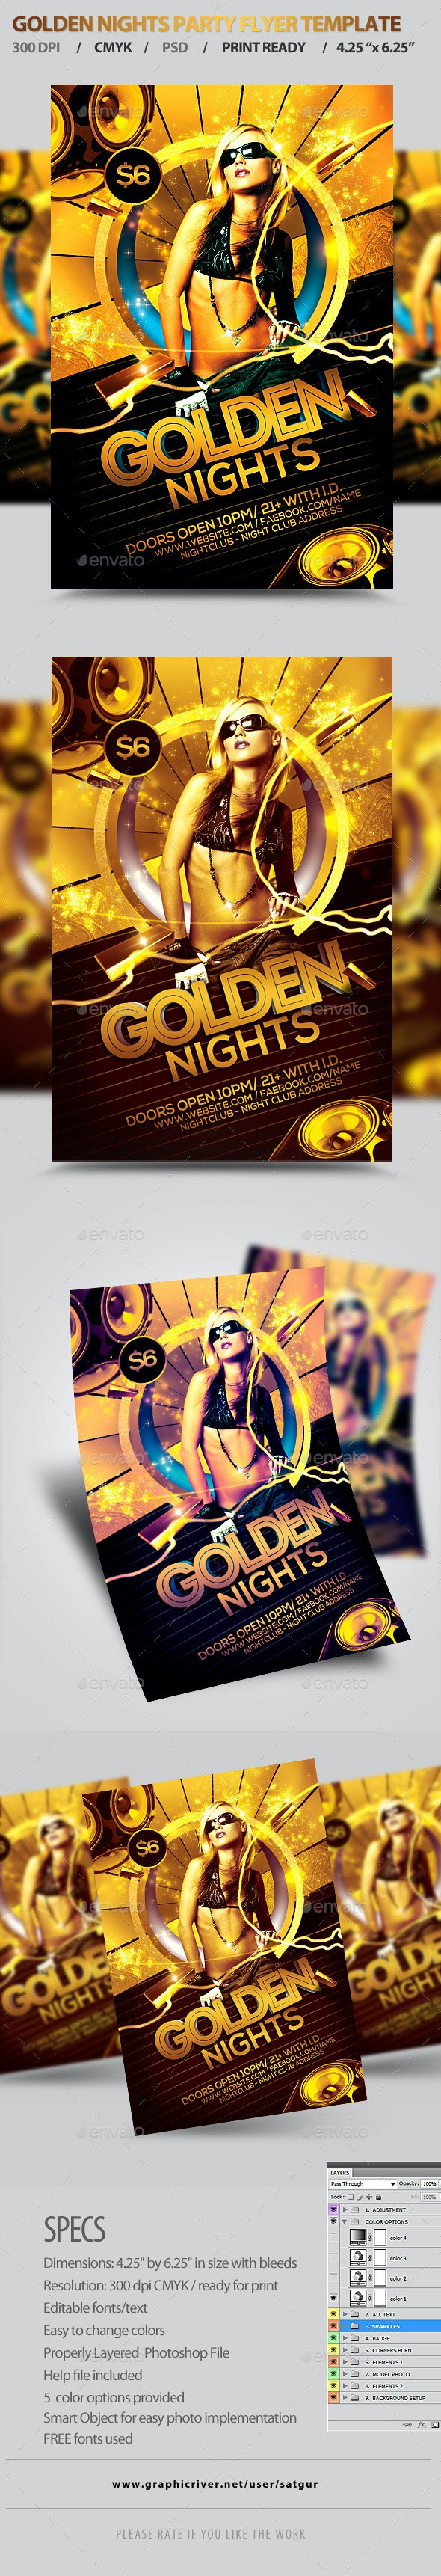 Golden Nights Party Flyer Template PSD - Clubs & Parties Events